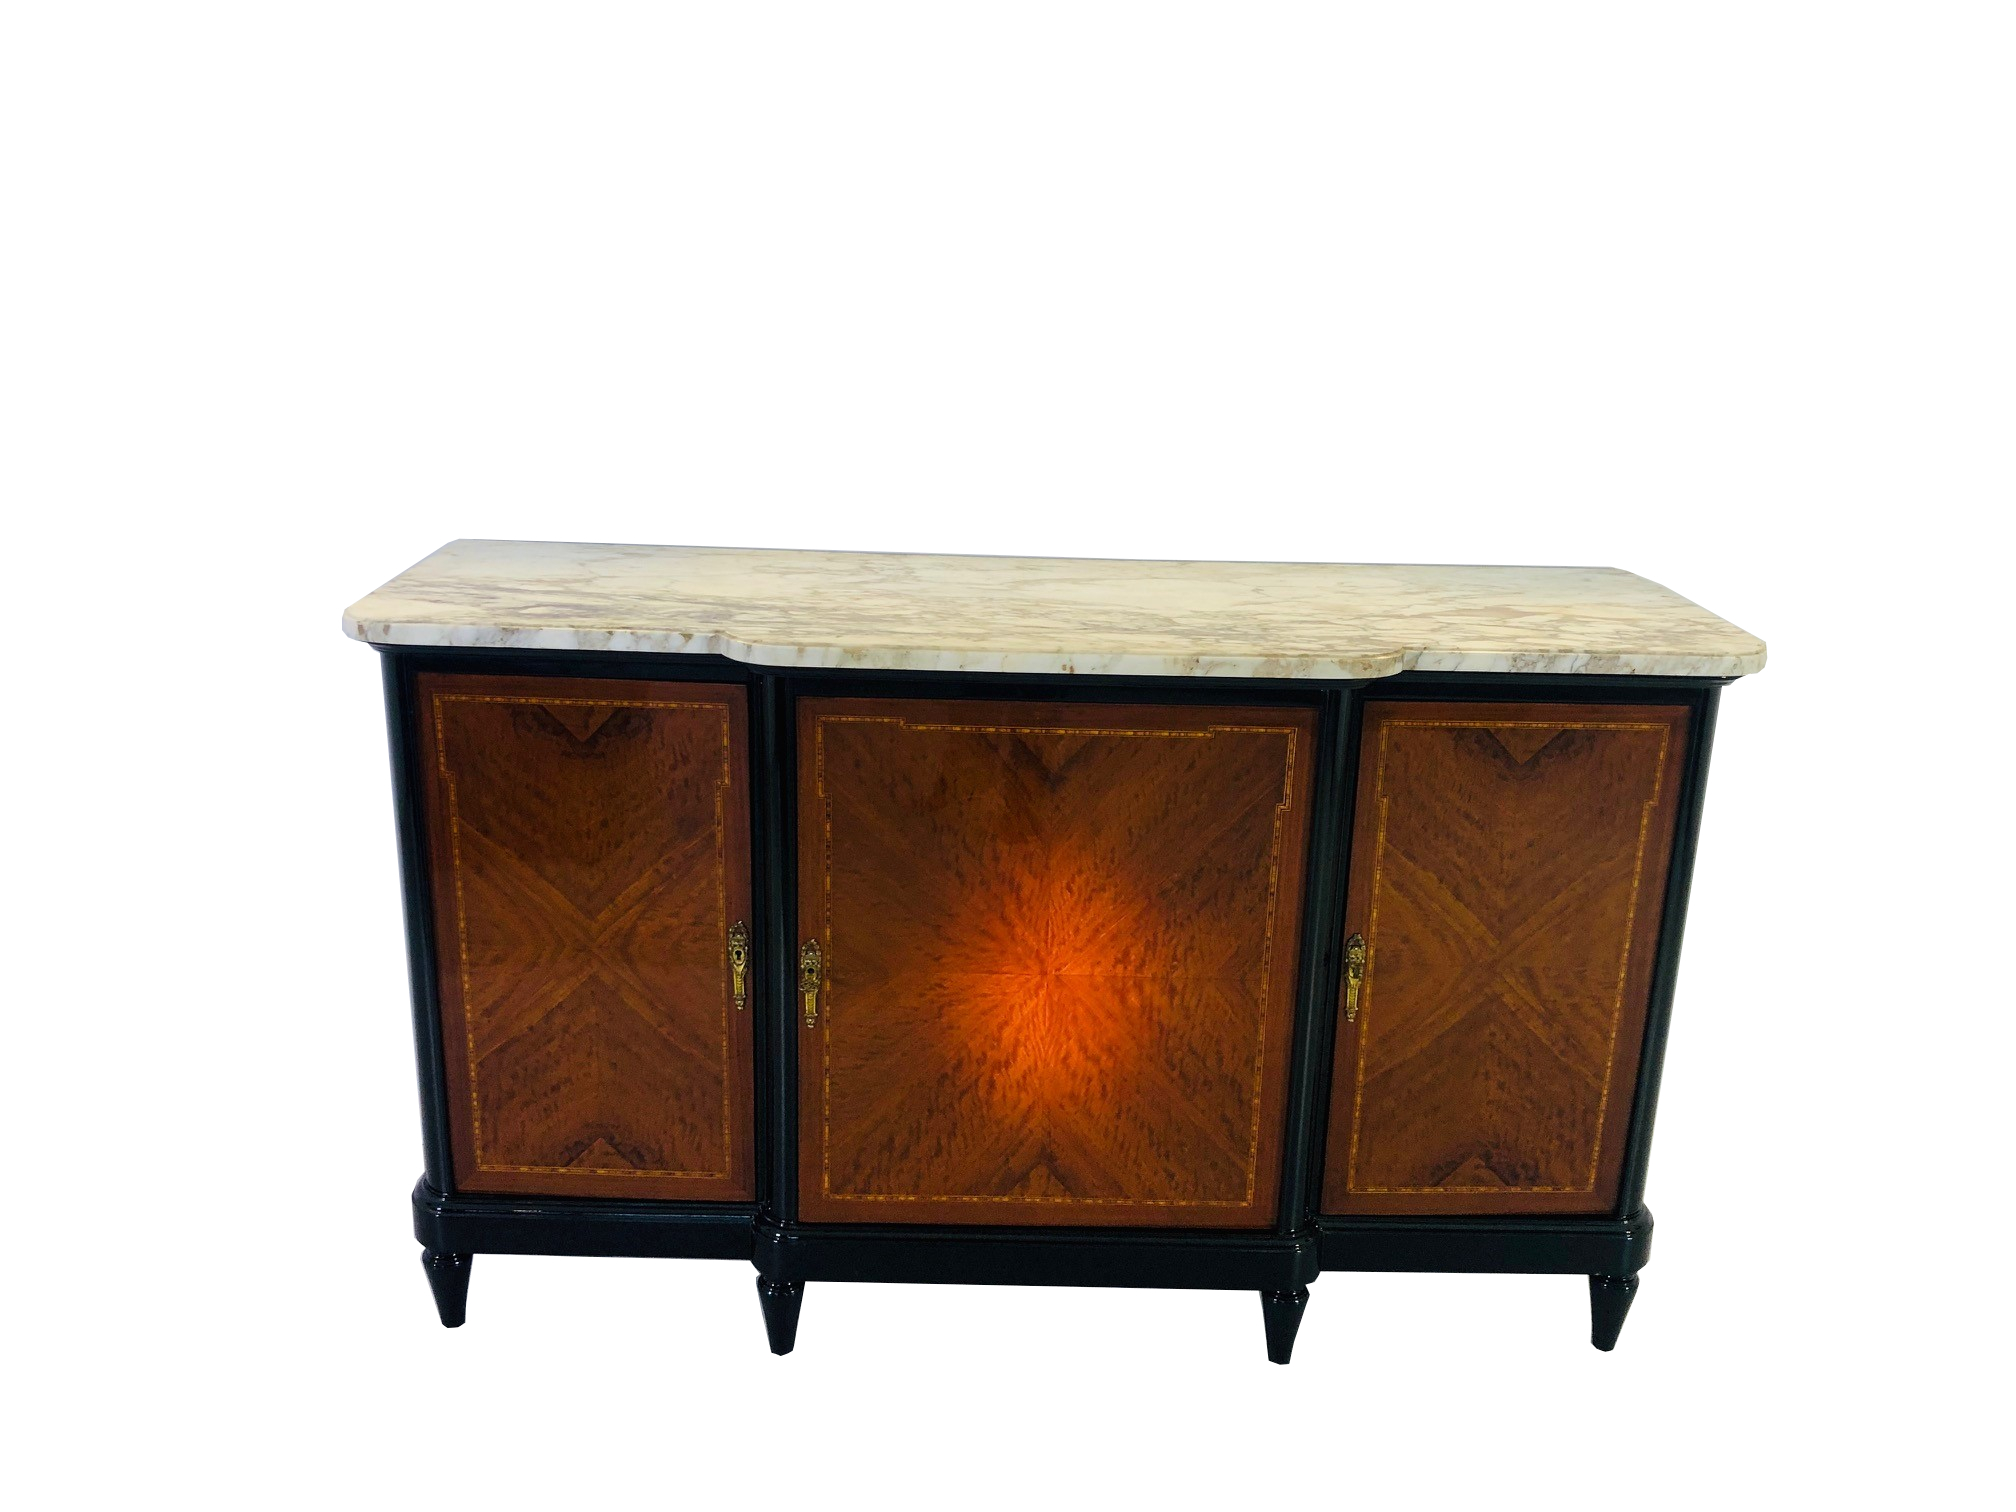 18th Century Louis Seize Sideboard Or Commode With A White Marble Top Buffet Interior